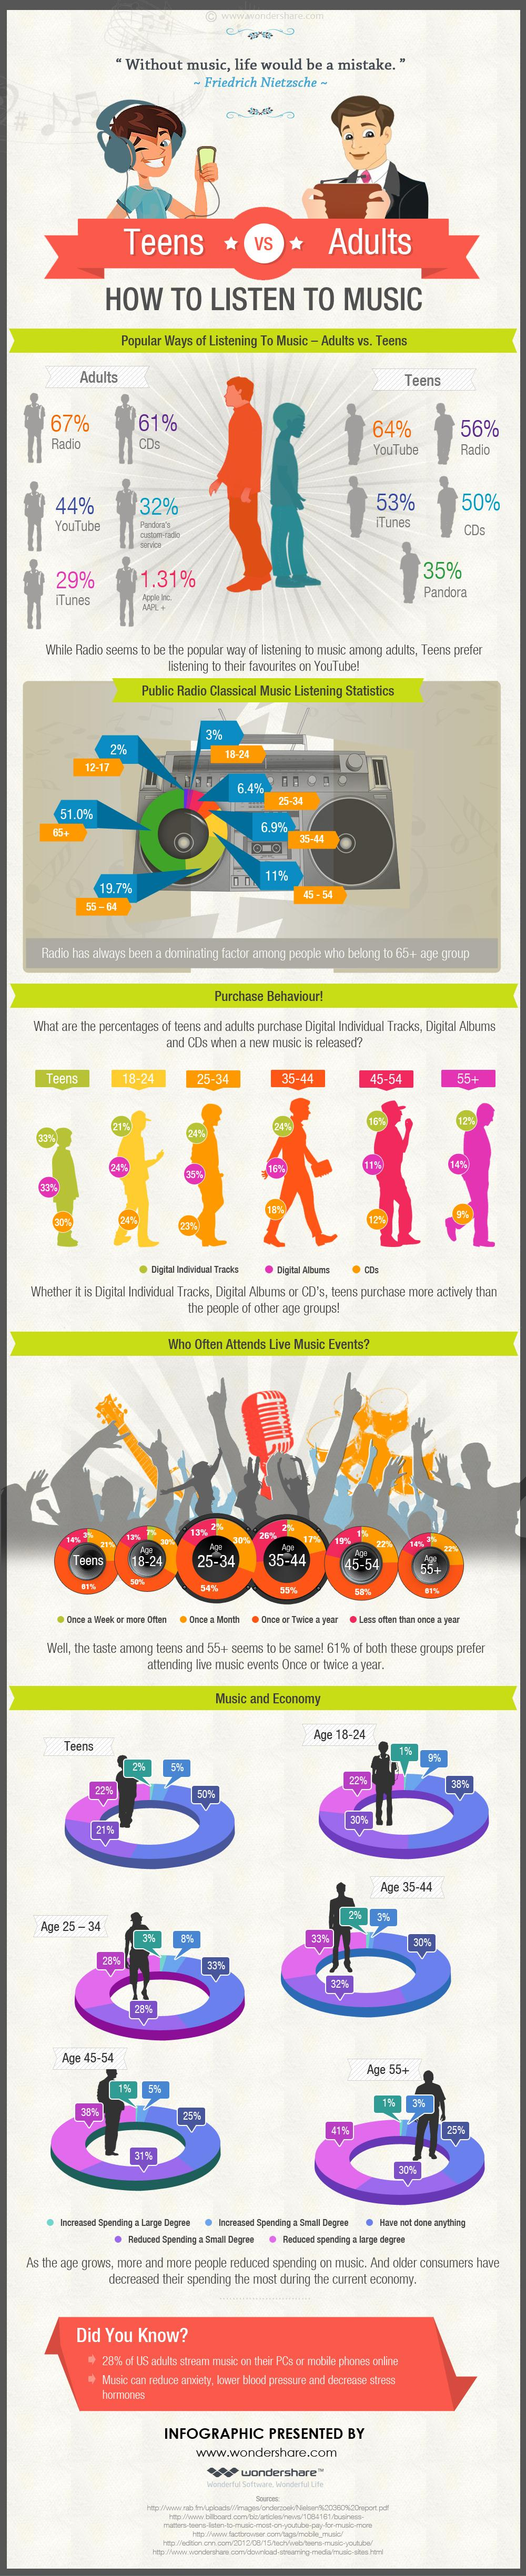 teens vs adults how to listen to music